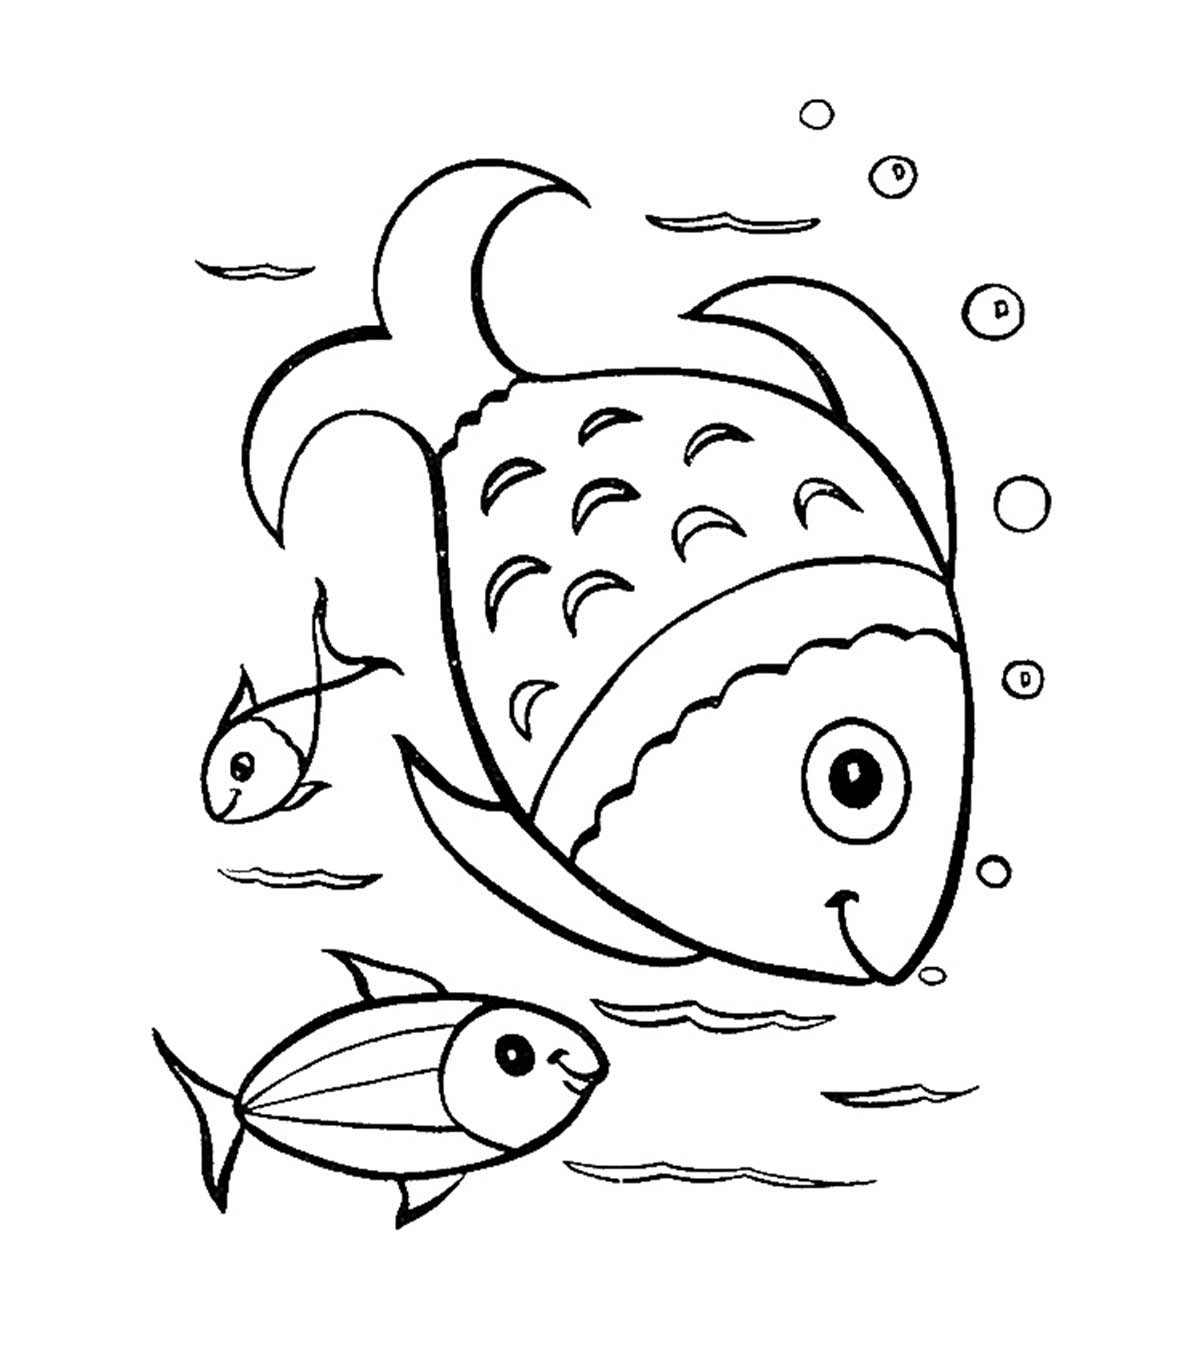 Eductional Coloring Pages